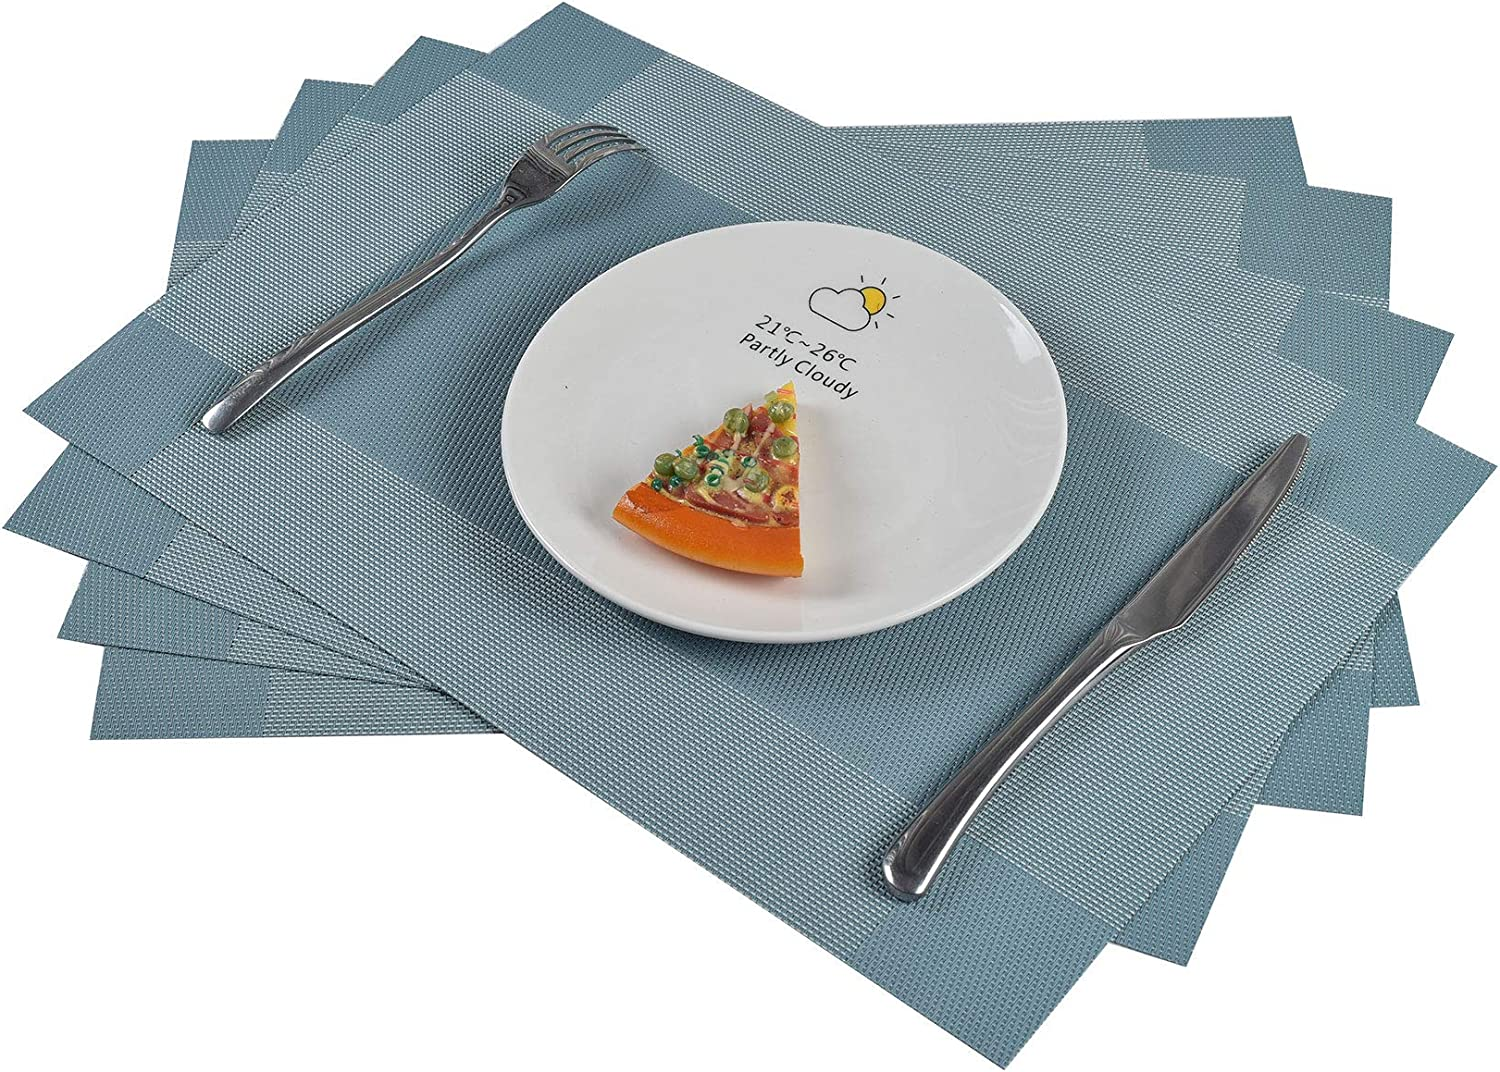 famibay PVC Placemats Set of 6 Heat Resistant Vinyl Cross Weave Place Mats Washable Kitchen Table Placemats Set of 4(Teal)